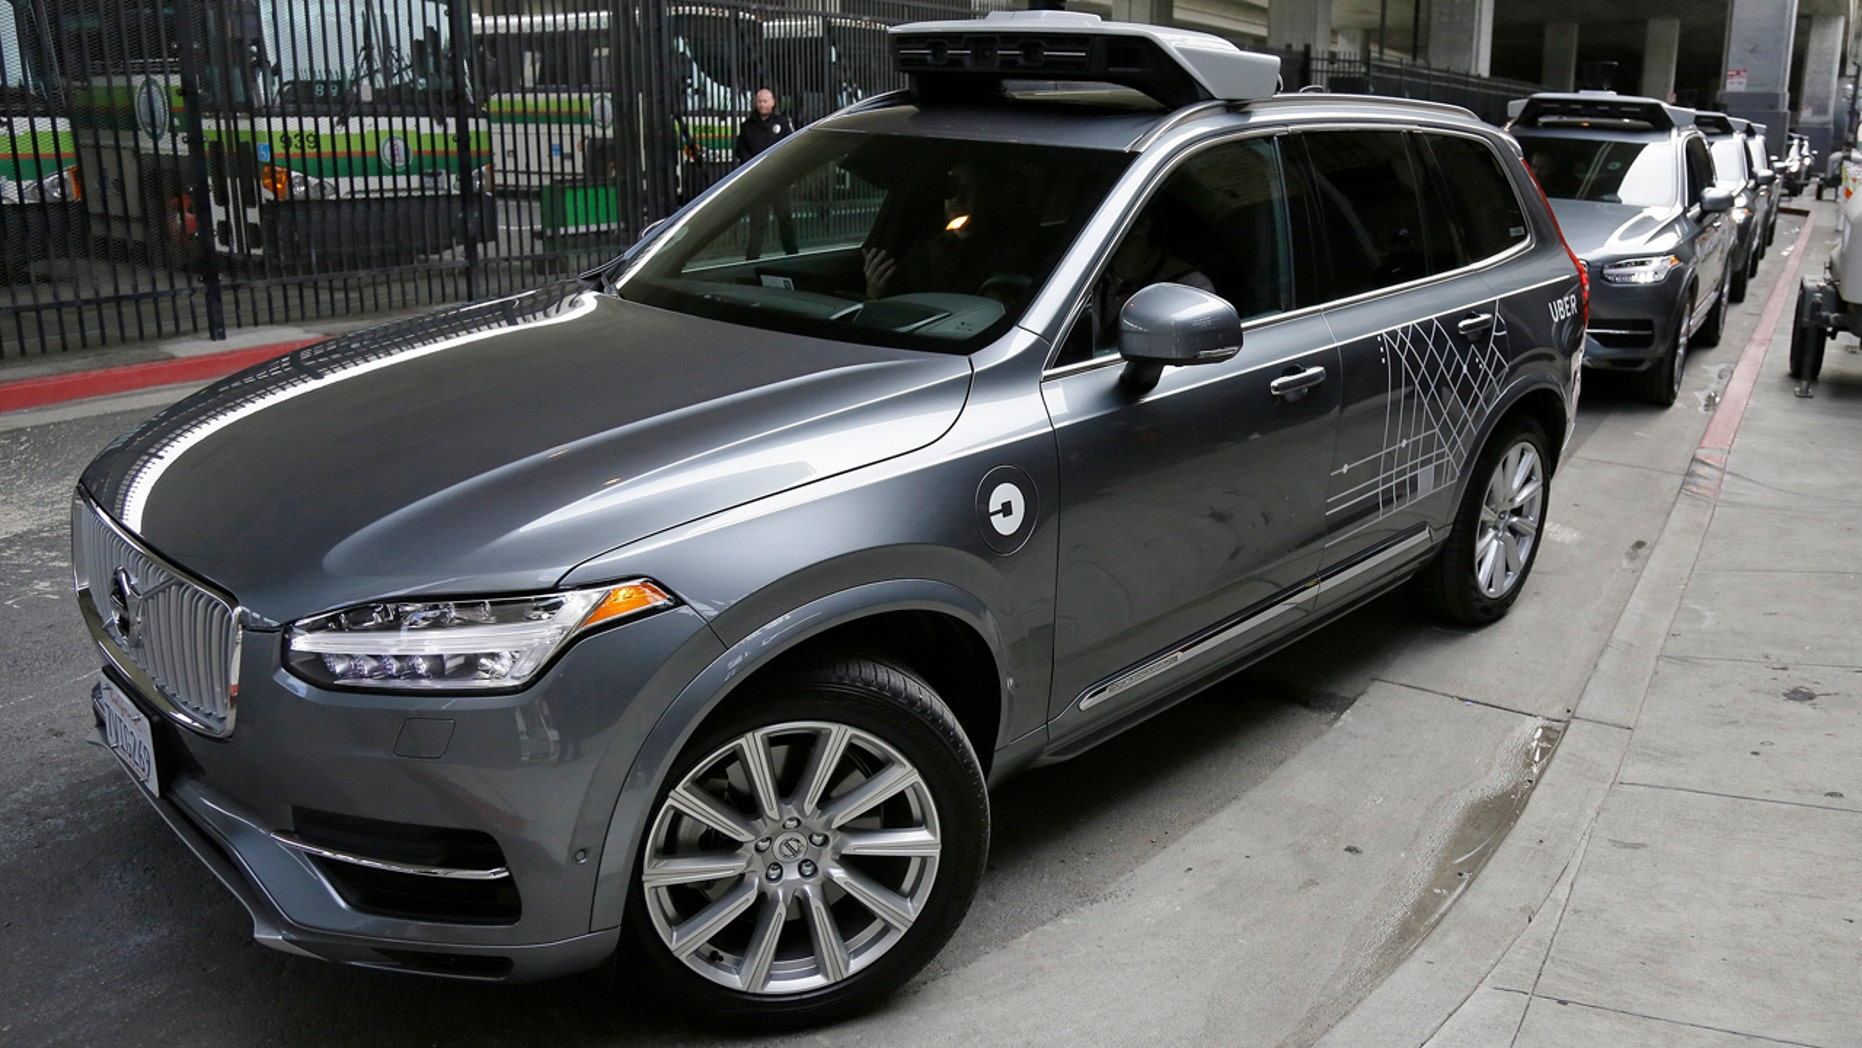 Dec. 13, 2016: An Uber driverless car heads out for a test drive in San Francisco.